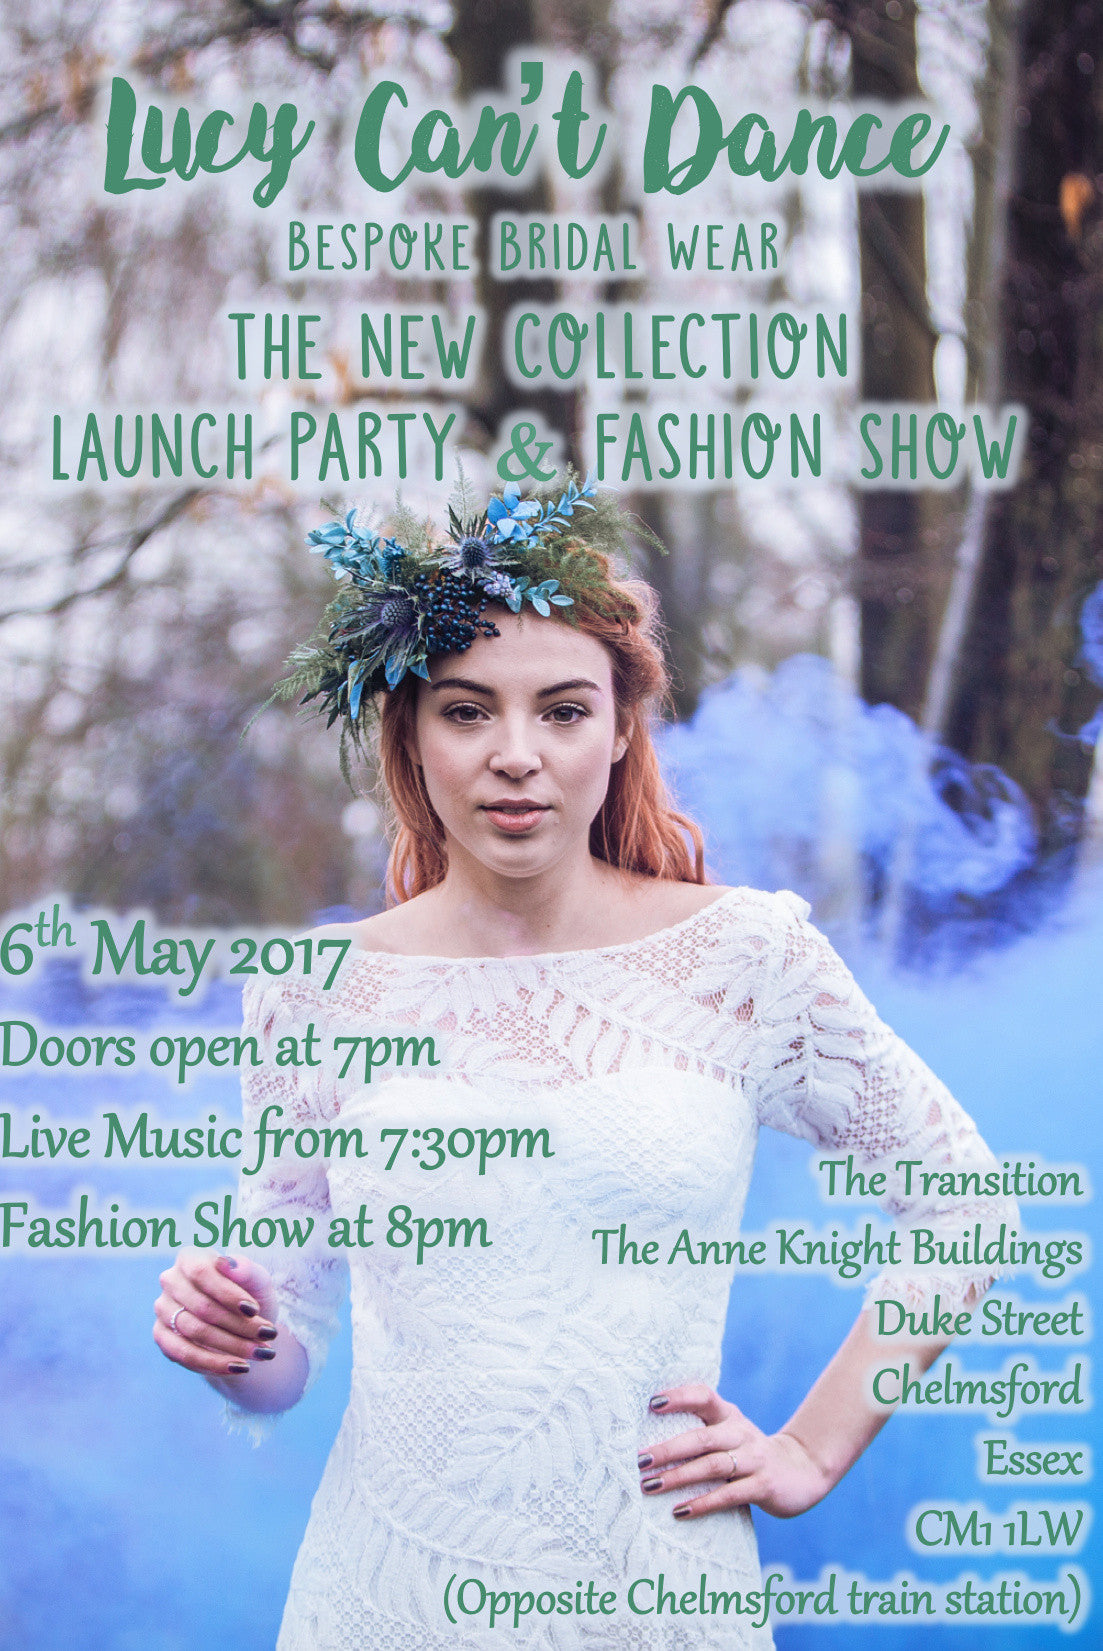 The New Collection: Launch Party and Fashion Show